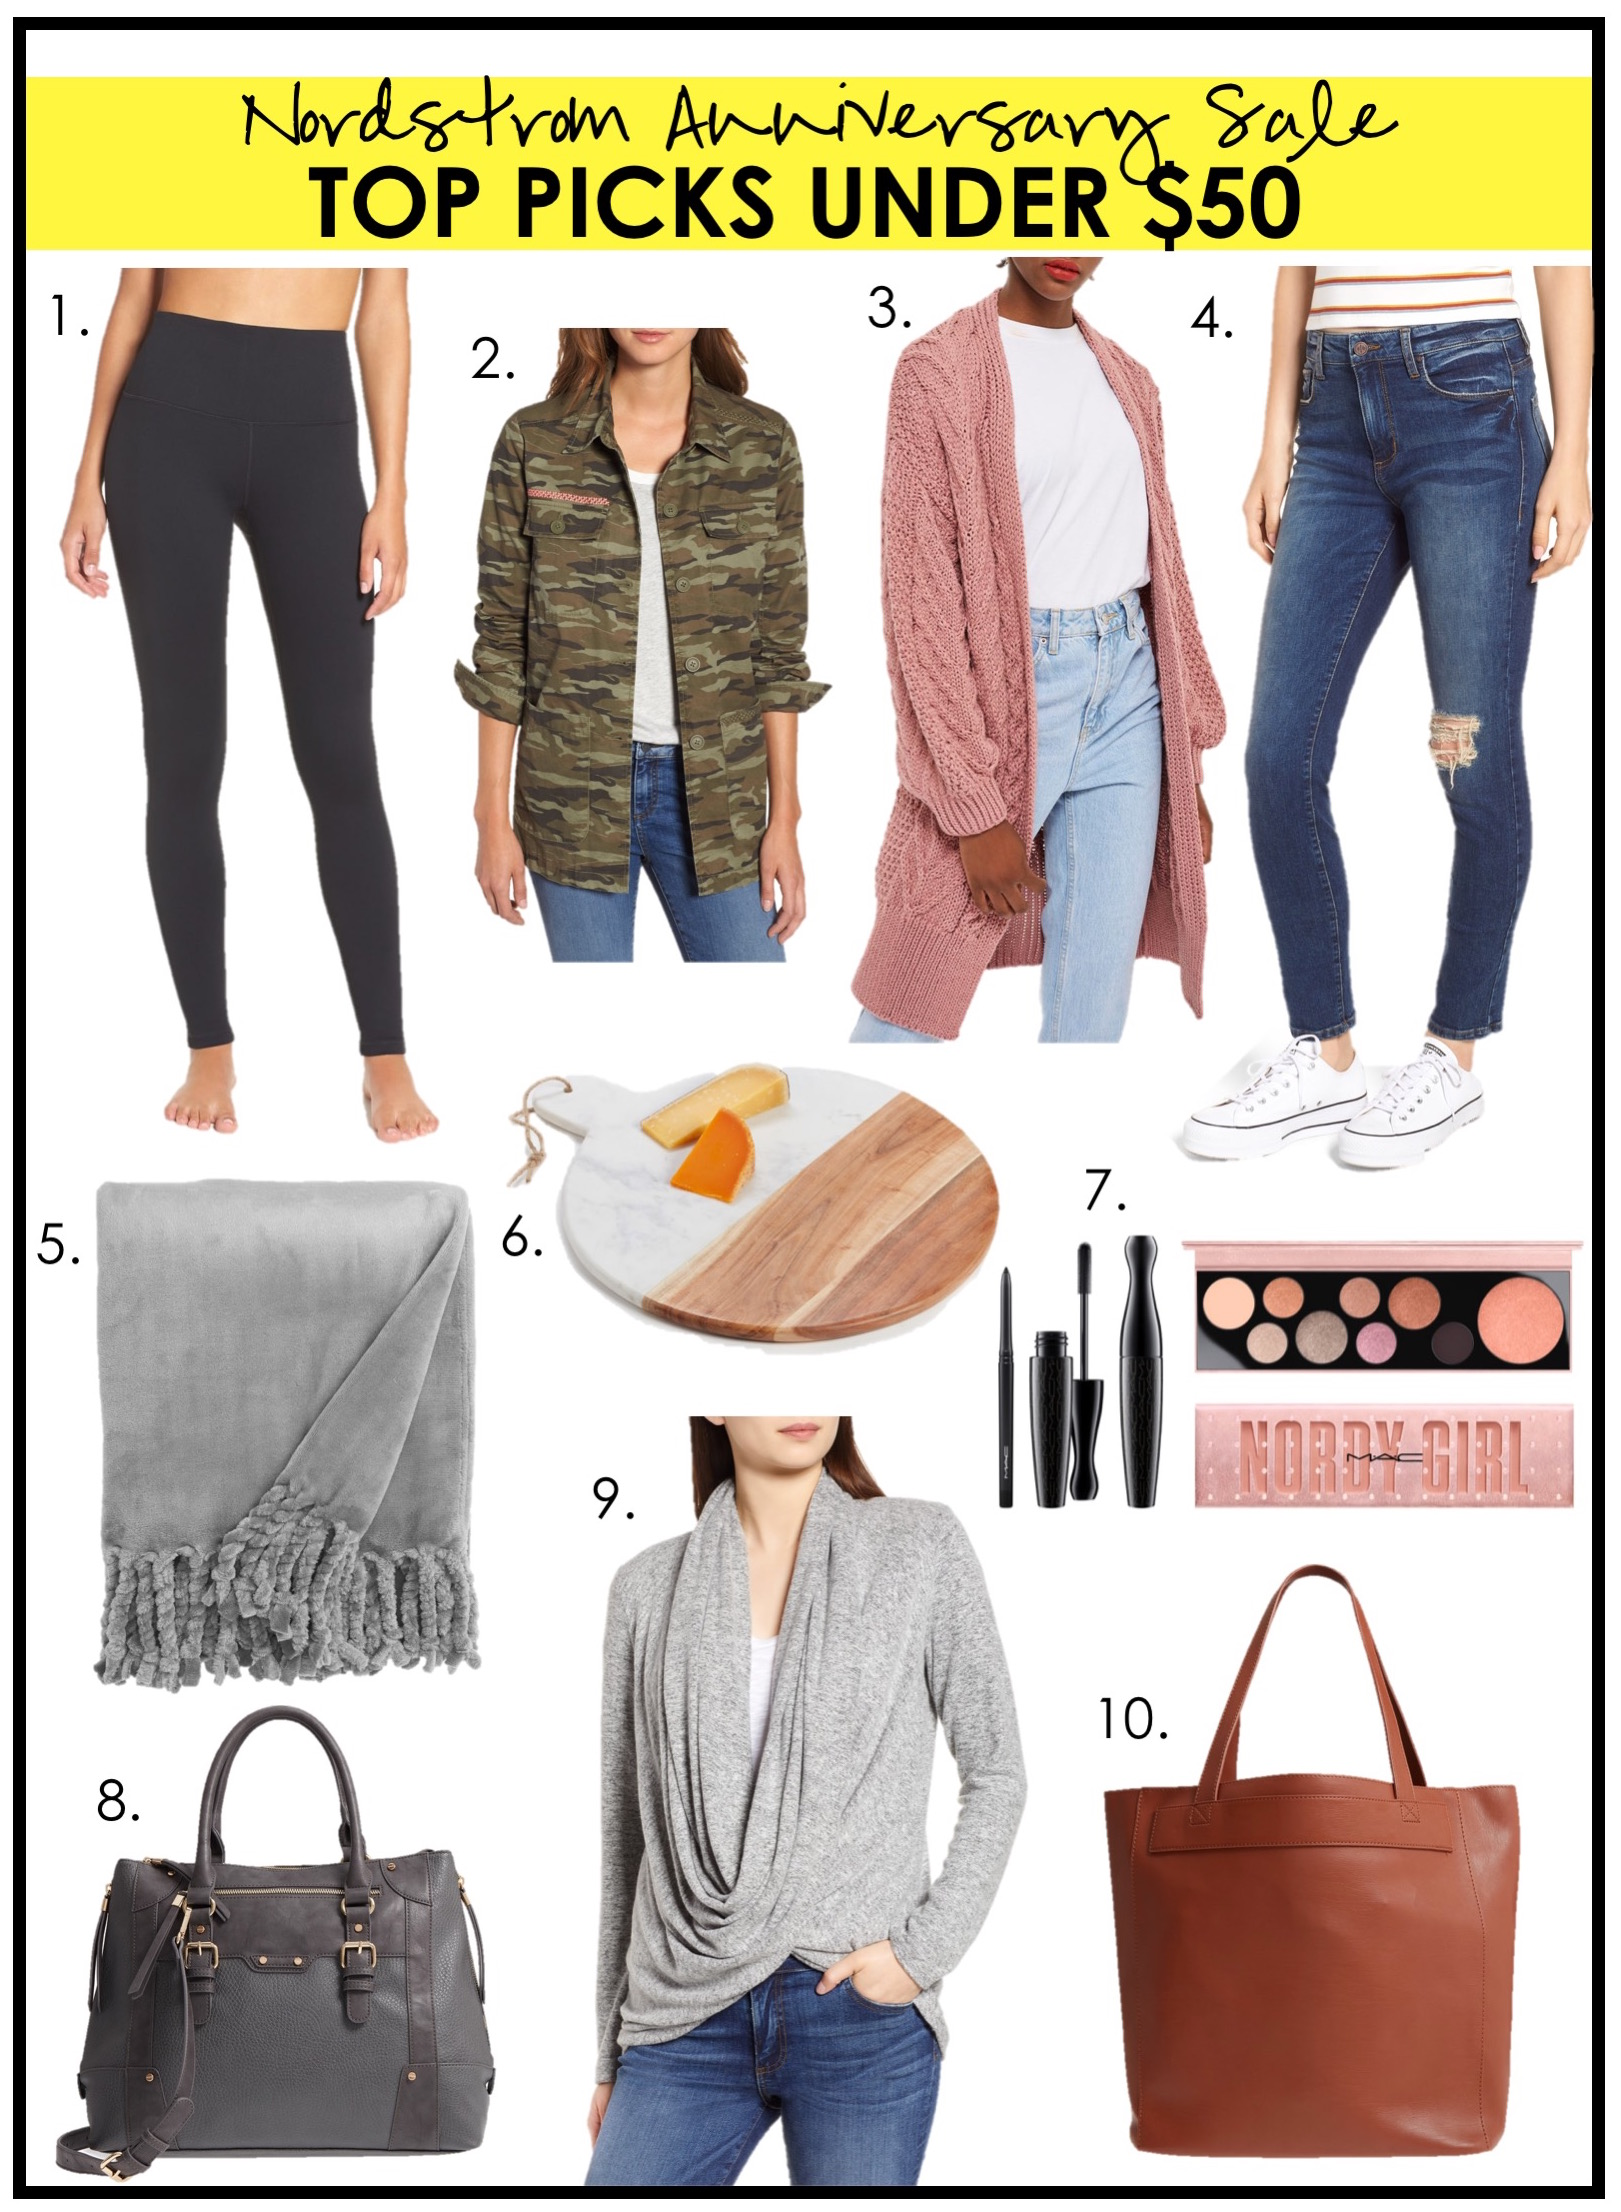 NORDSTROM ANNIVERSARY SALE PICKS: UNDER $25, UNDER $50